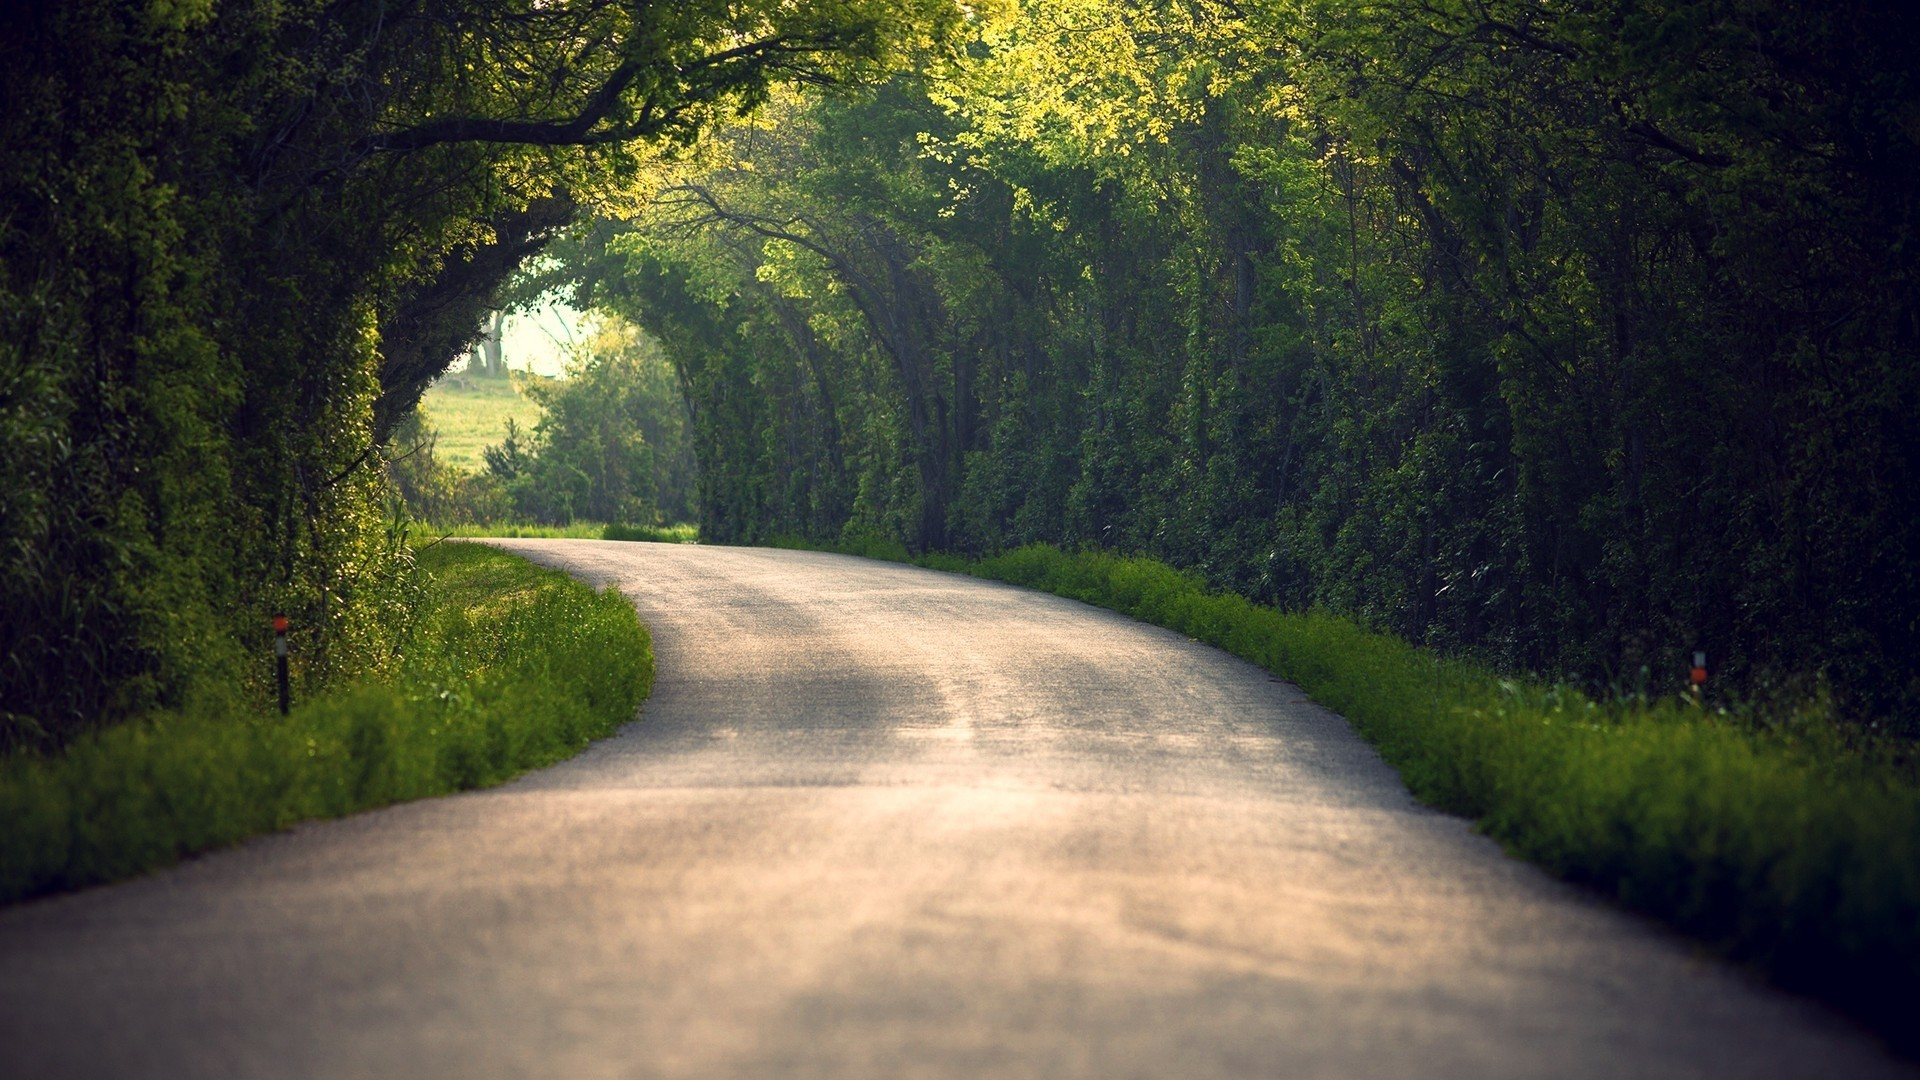 1920x1080 Preview wallpaper summer, nature, road, leaves, trees